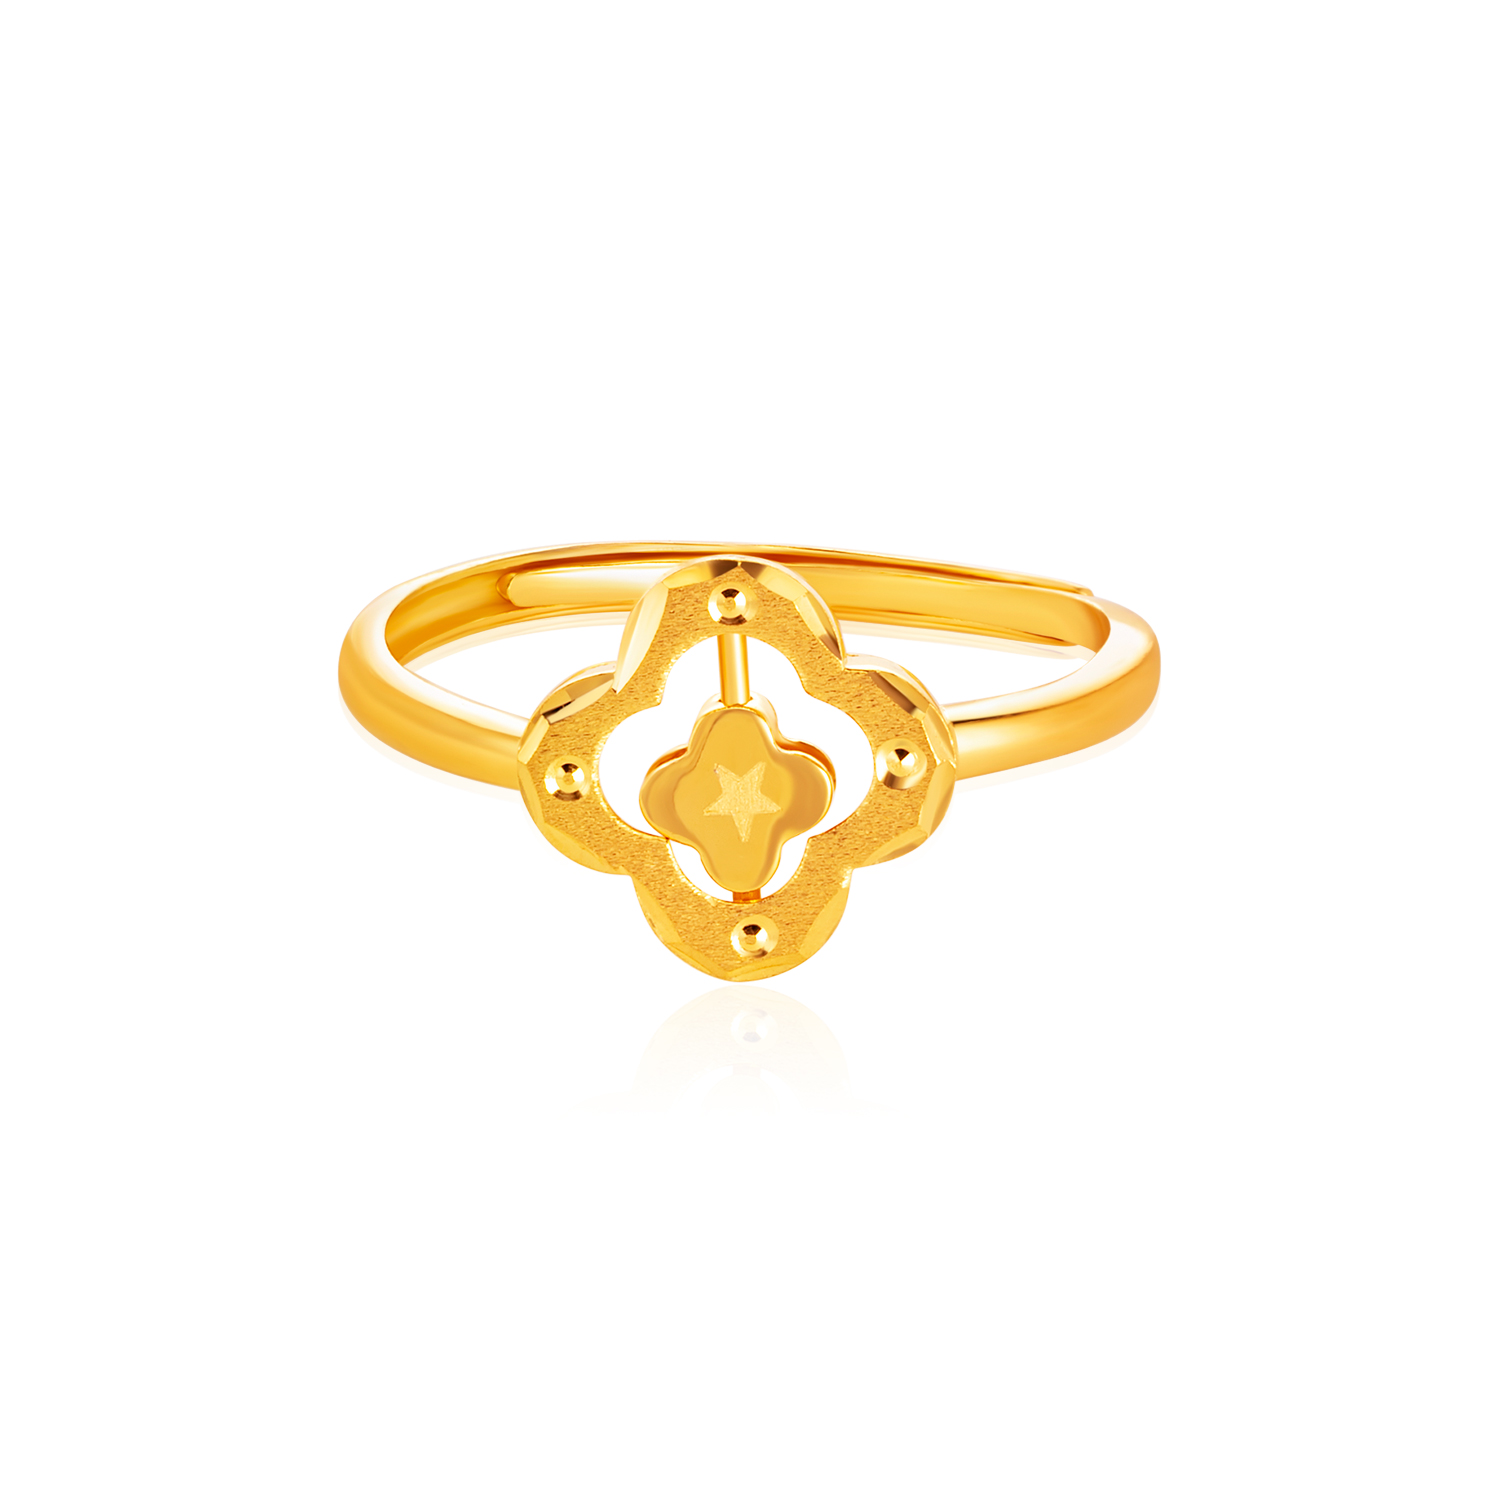 SK 916 Double Clover Gold Ring